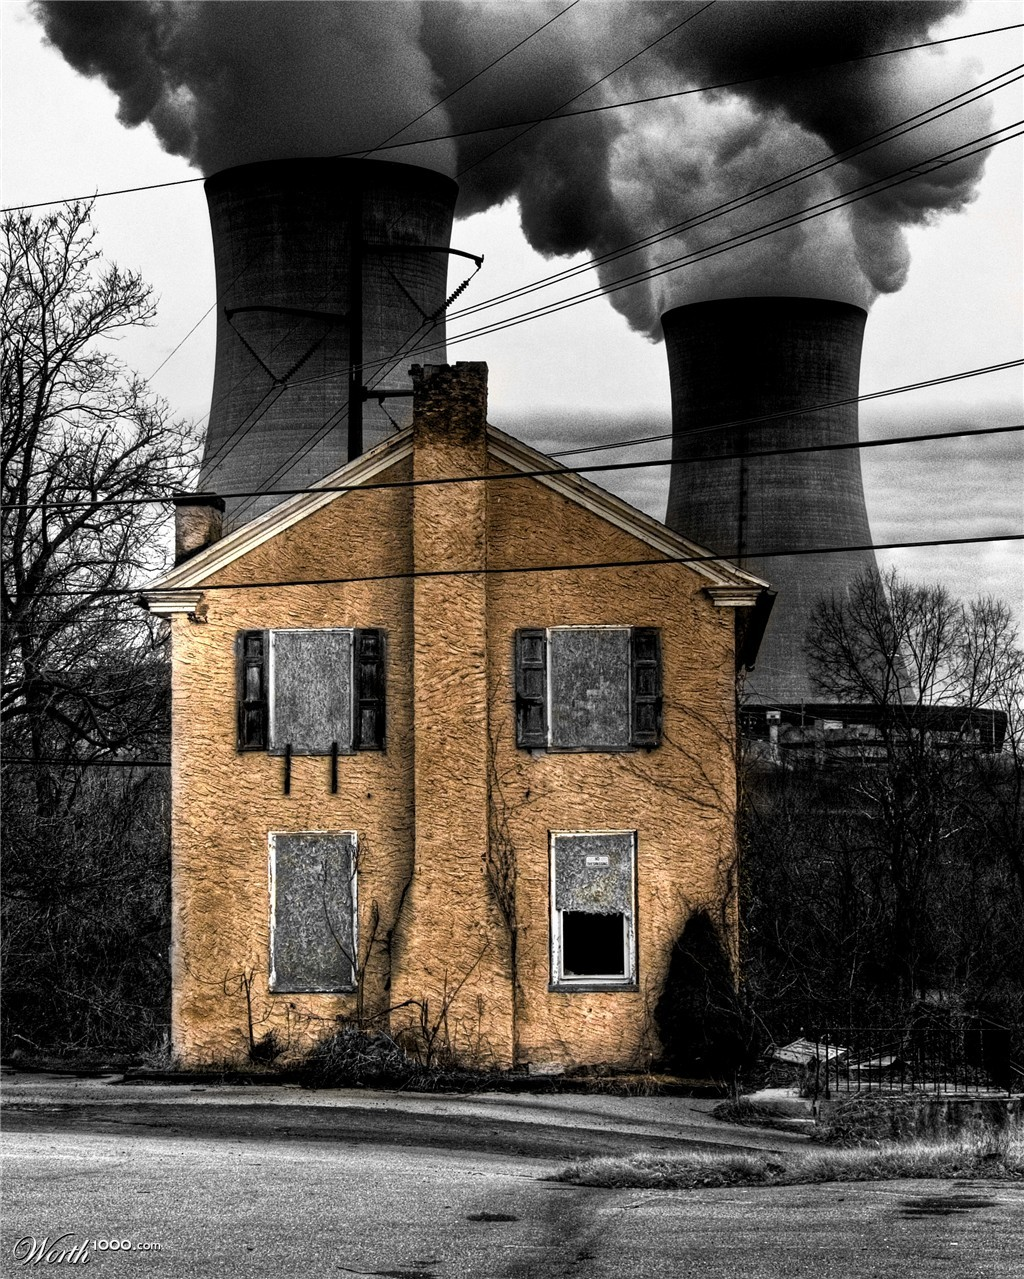 houses-pollution-nuclear-power-plants-industrial-plants-factory-_557745-47